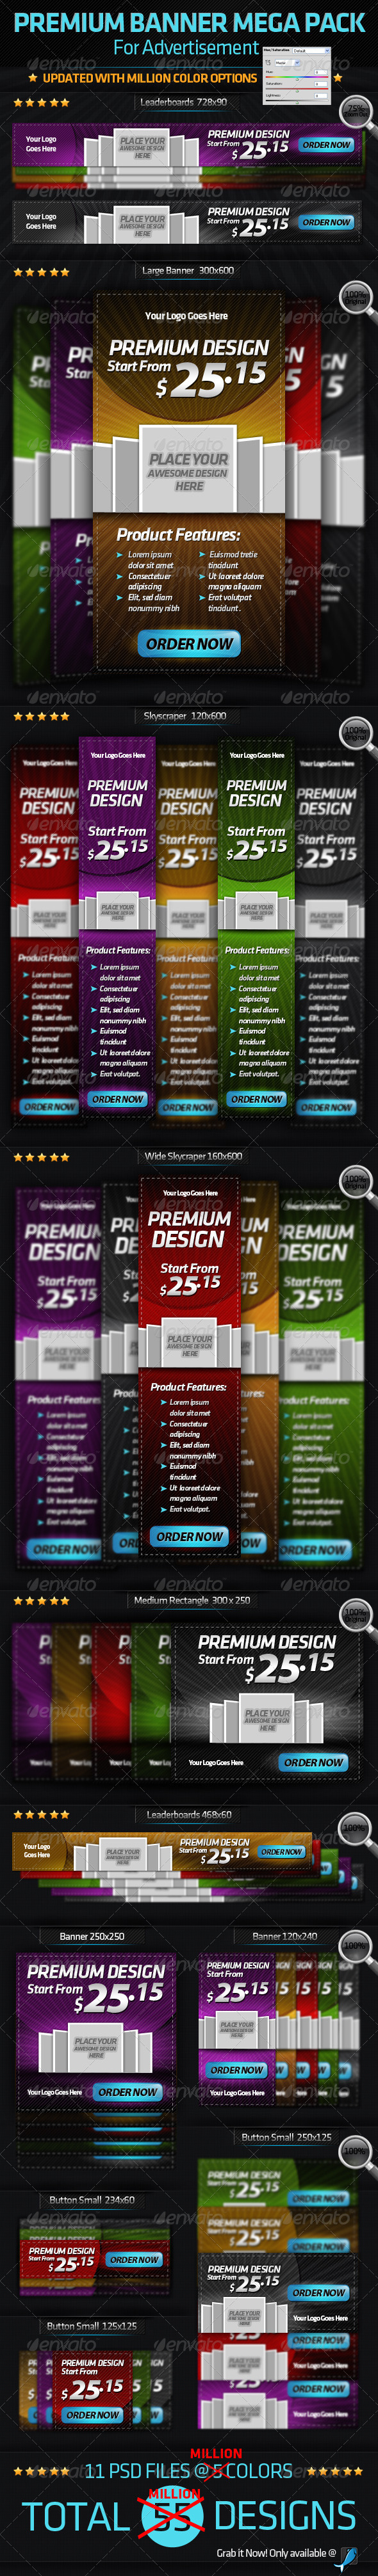 Premium Banner-Mega Pack-For Online Advertisement - Banners & Ads Web Elements